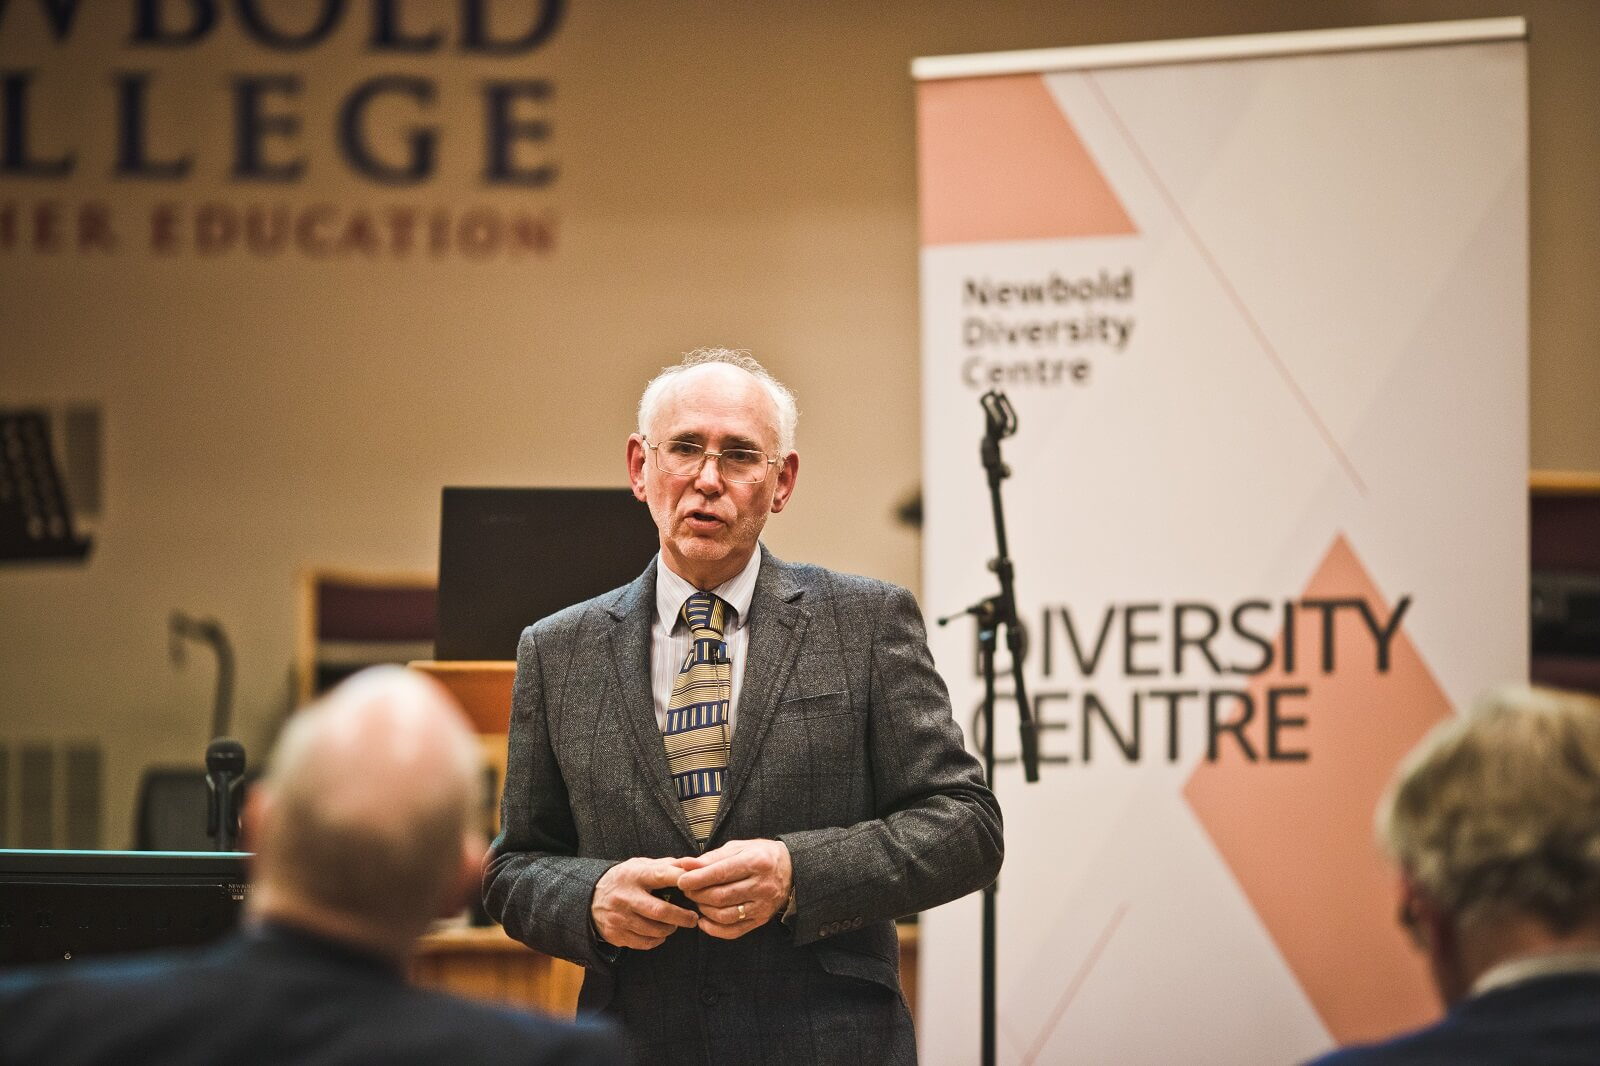 David Putt at Diversity Lecture - March 2020